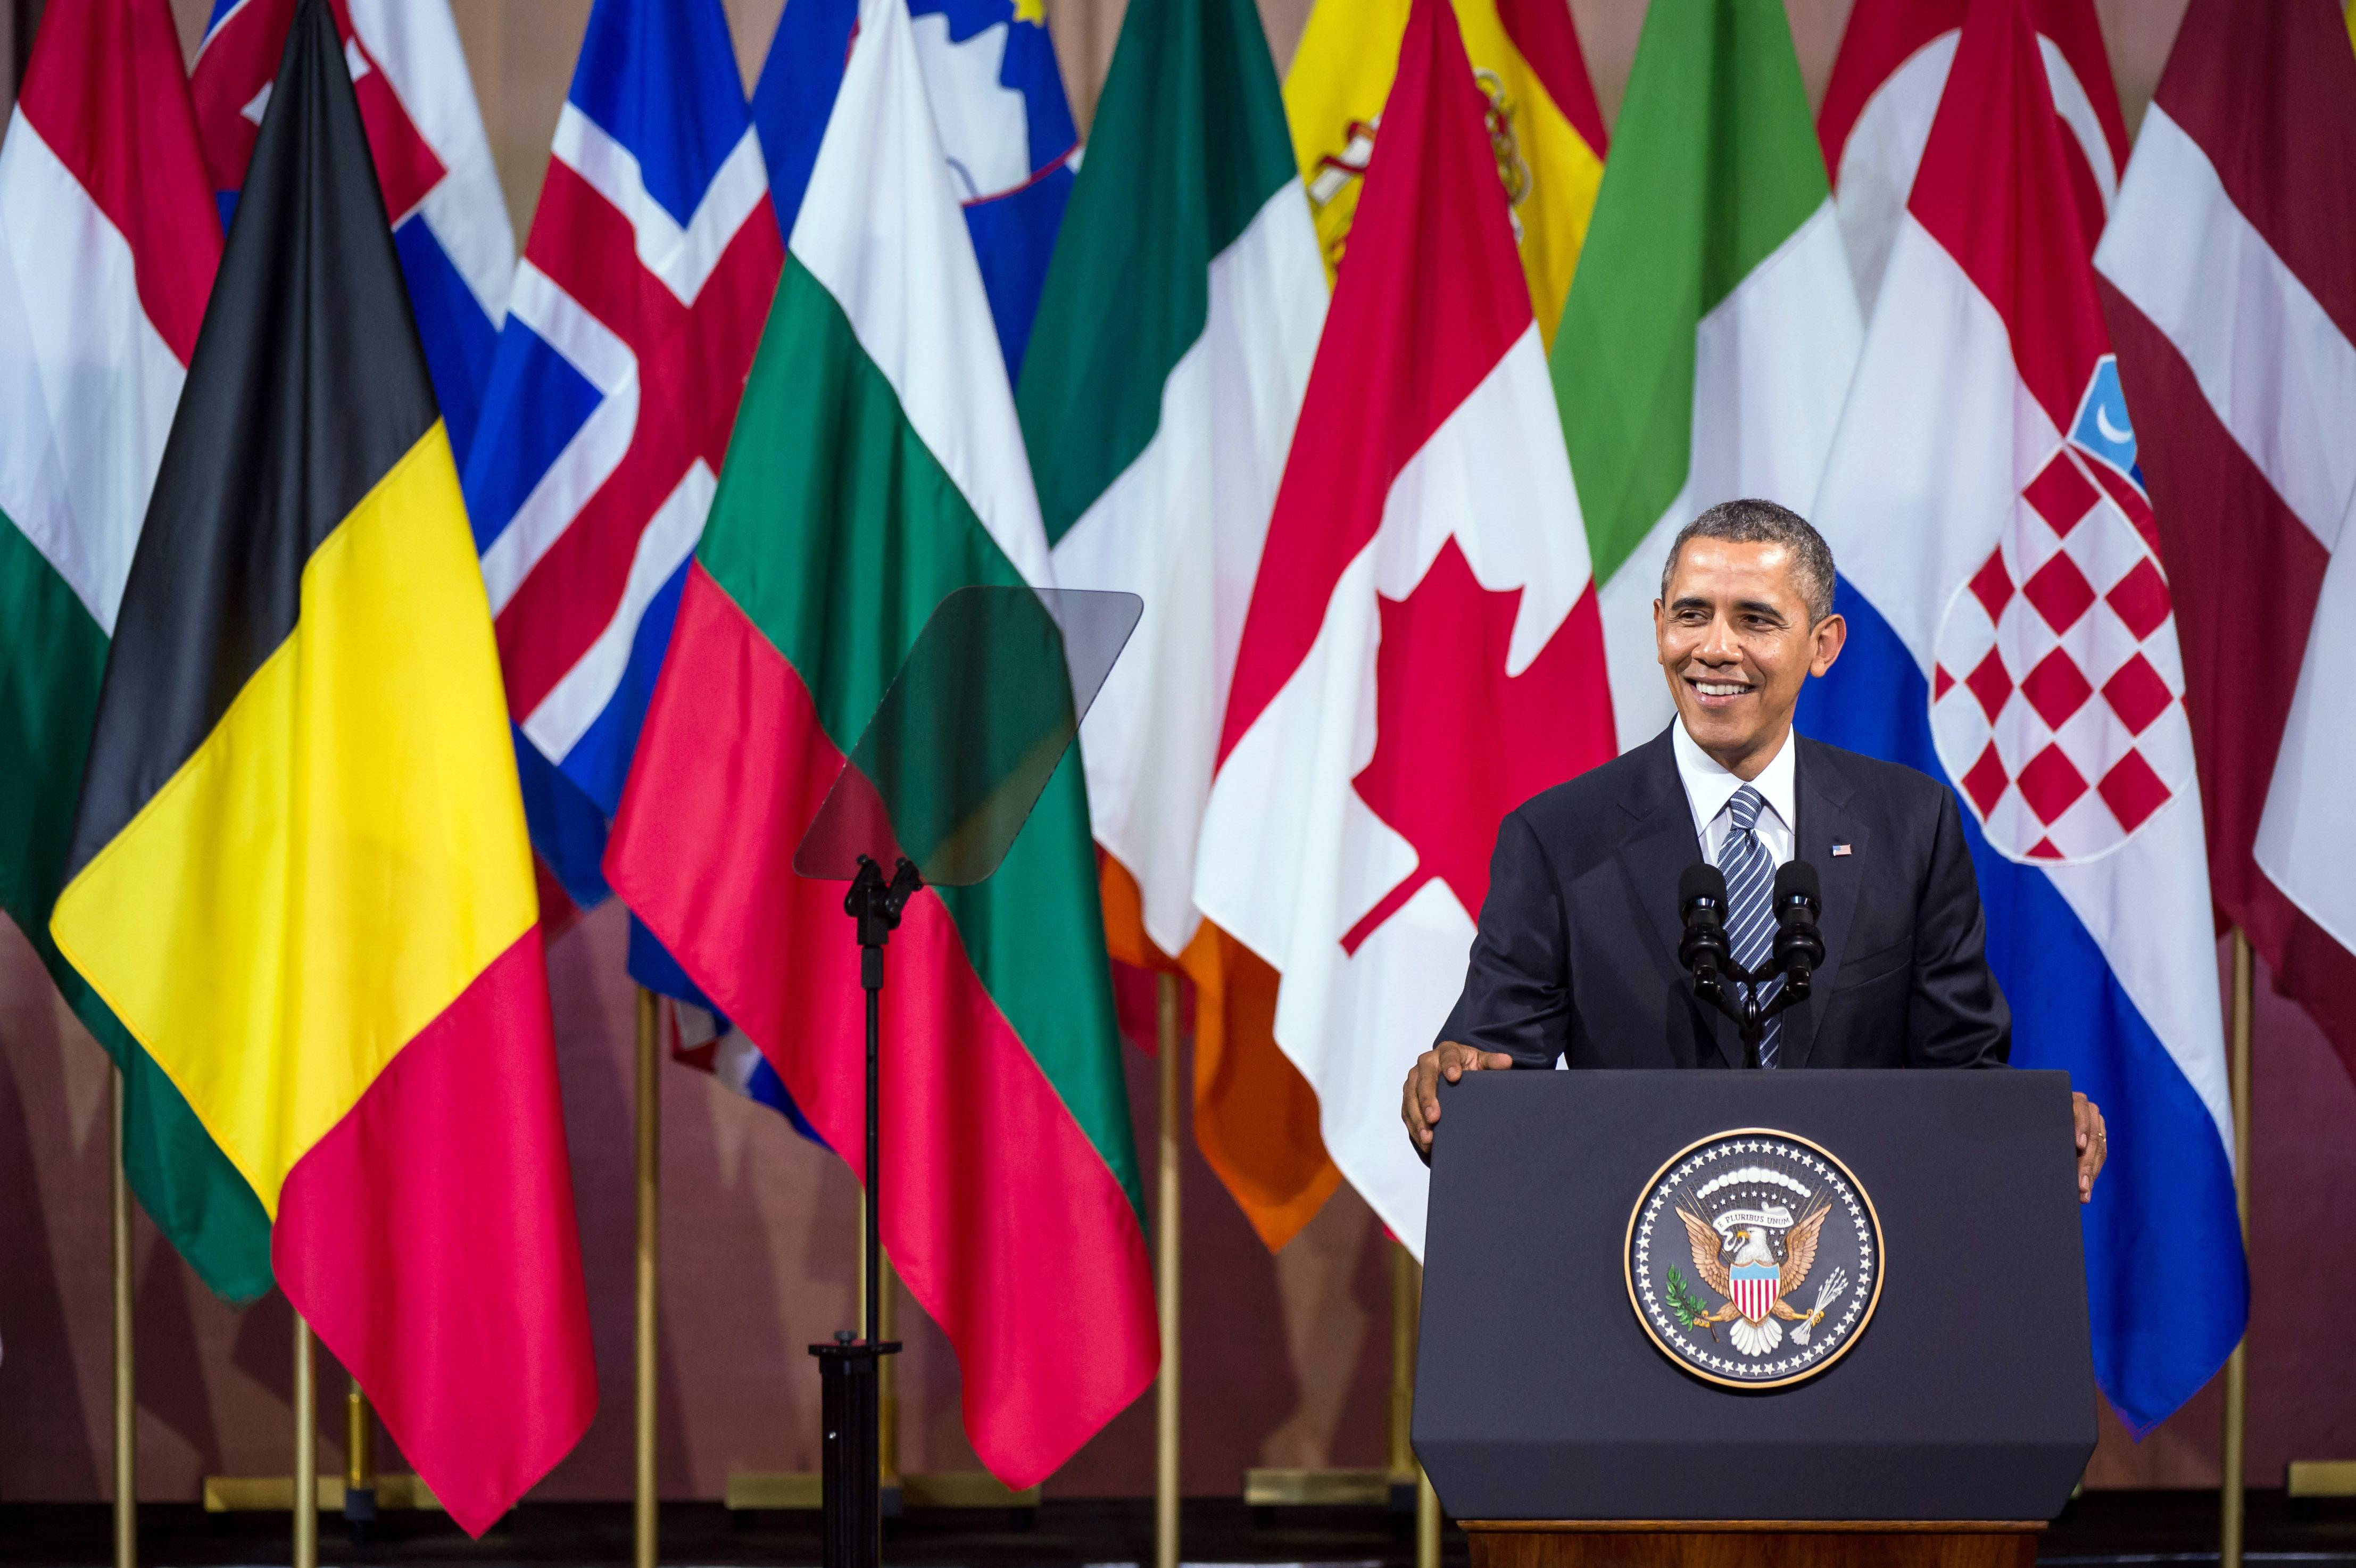 President Barack Obama, in Brussels on Wednesday, appealed to Europeans on Wednesday to retrench behind the war-won ideals of freedom and human dignity, declaring that those advocating those values will ultimately triumph in Ukraine.